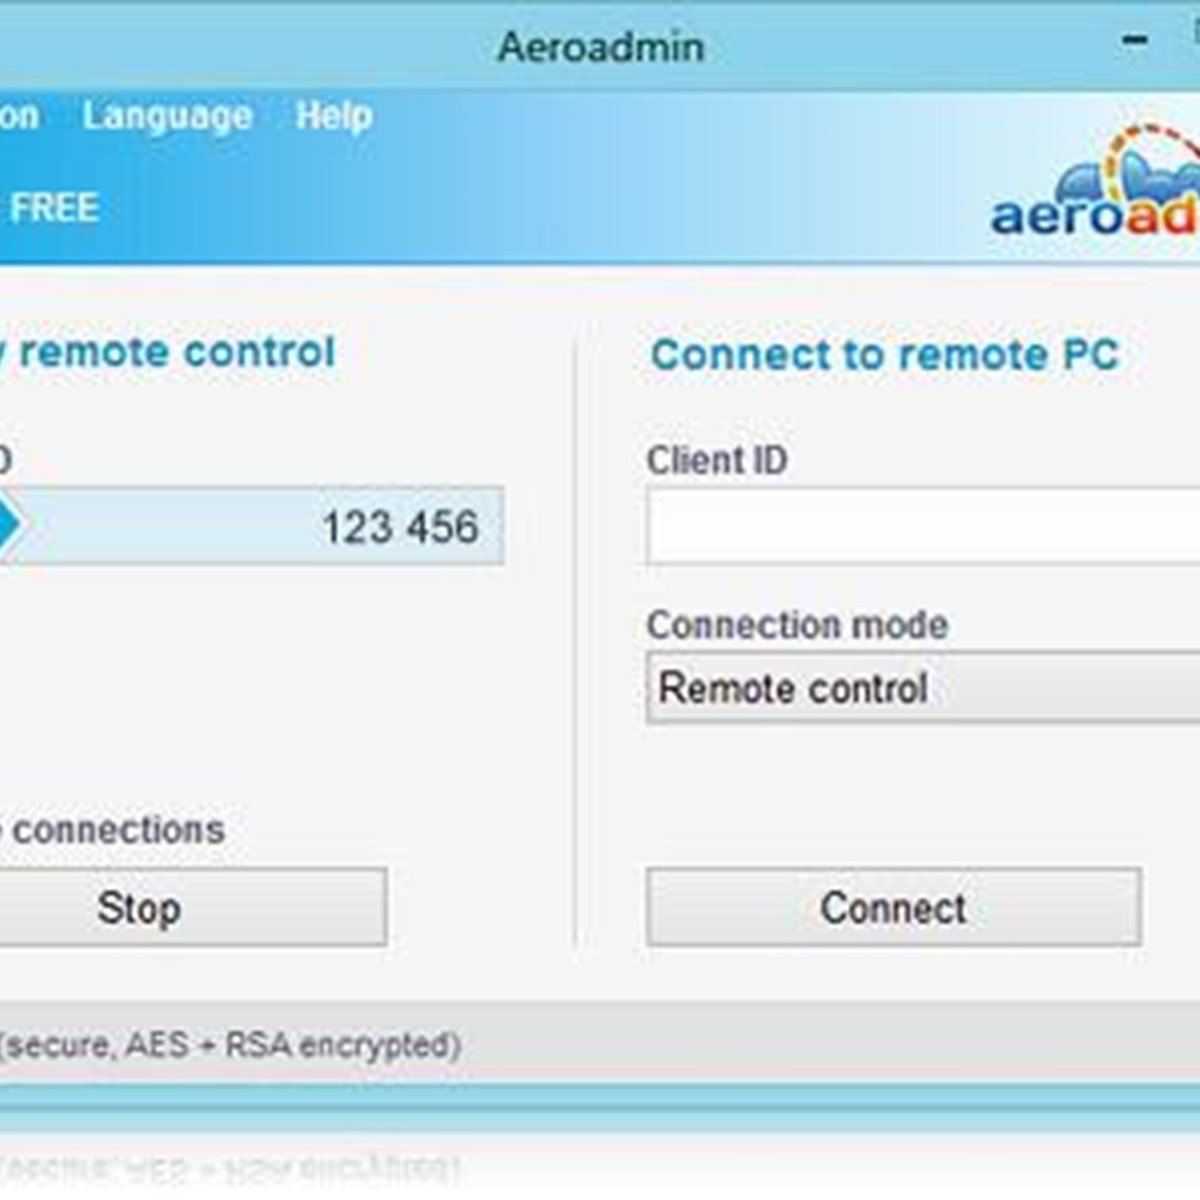 Aeroadmin Alternatives and Similar Software - AlternativeTo net